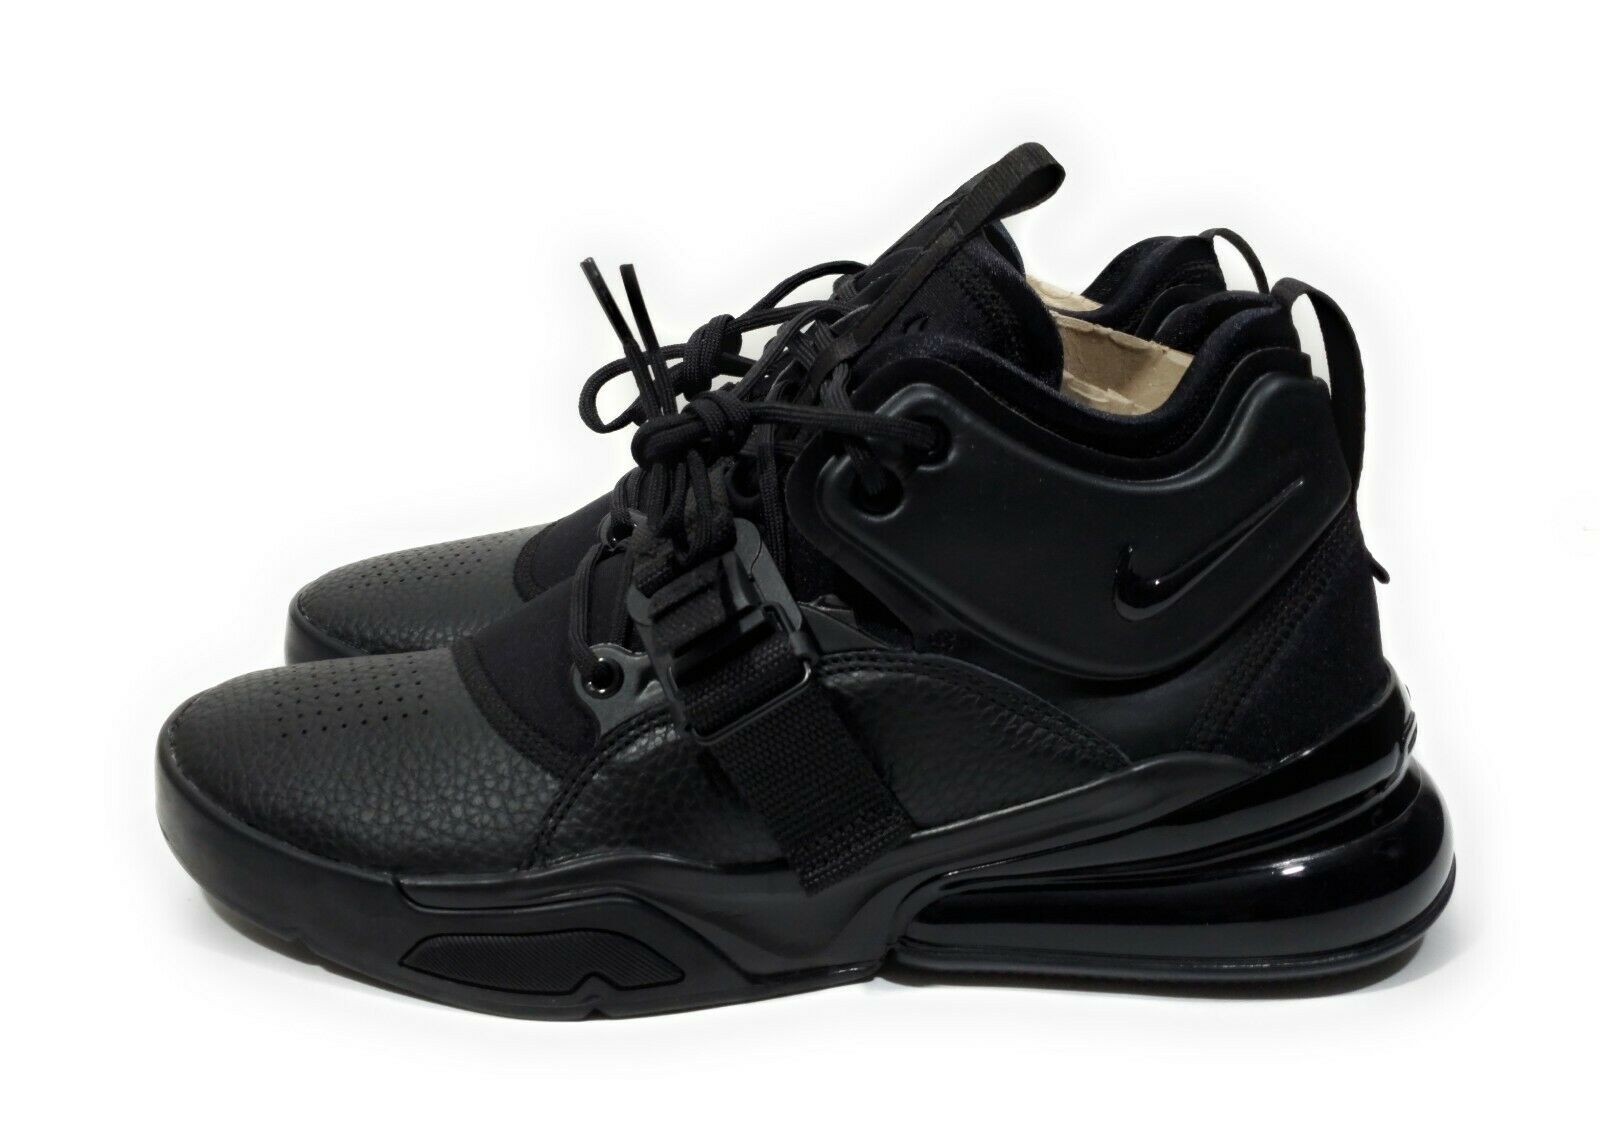 Nike Air Force 270 Mens shoes Black Size 9